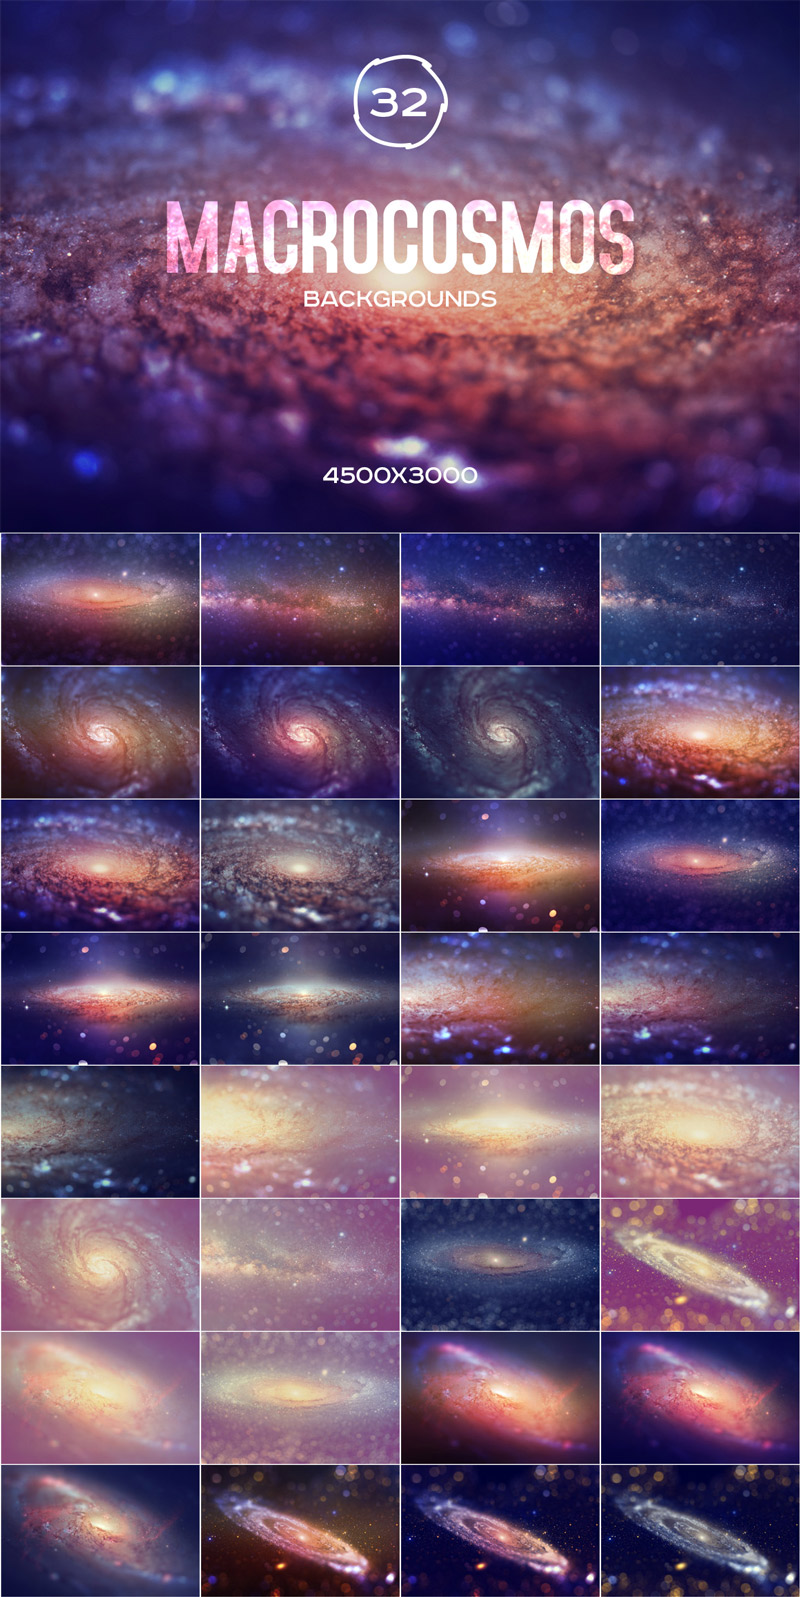 Magic-Photoshop-Toolbox-Preview-56